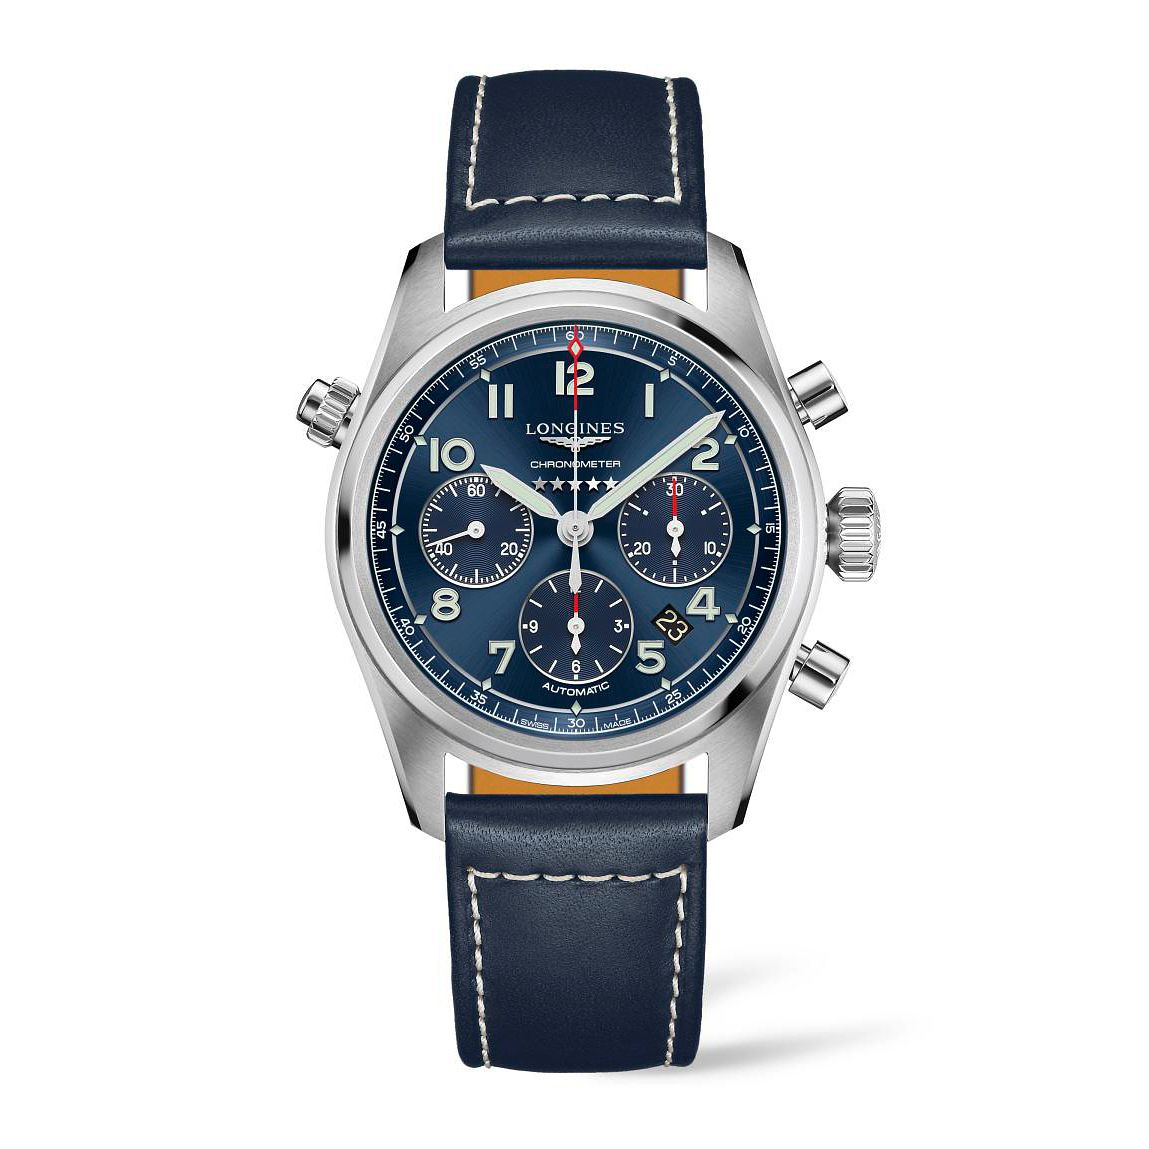 Longines Spirit Chrono Men's Blue Leather Strap Watch - Product number 3868265